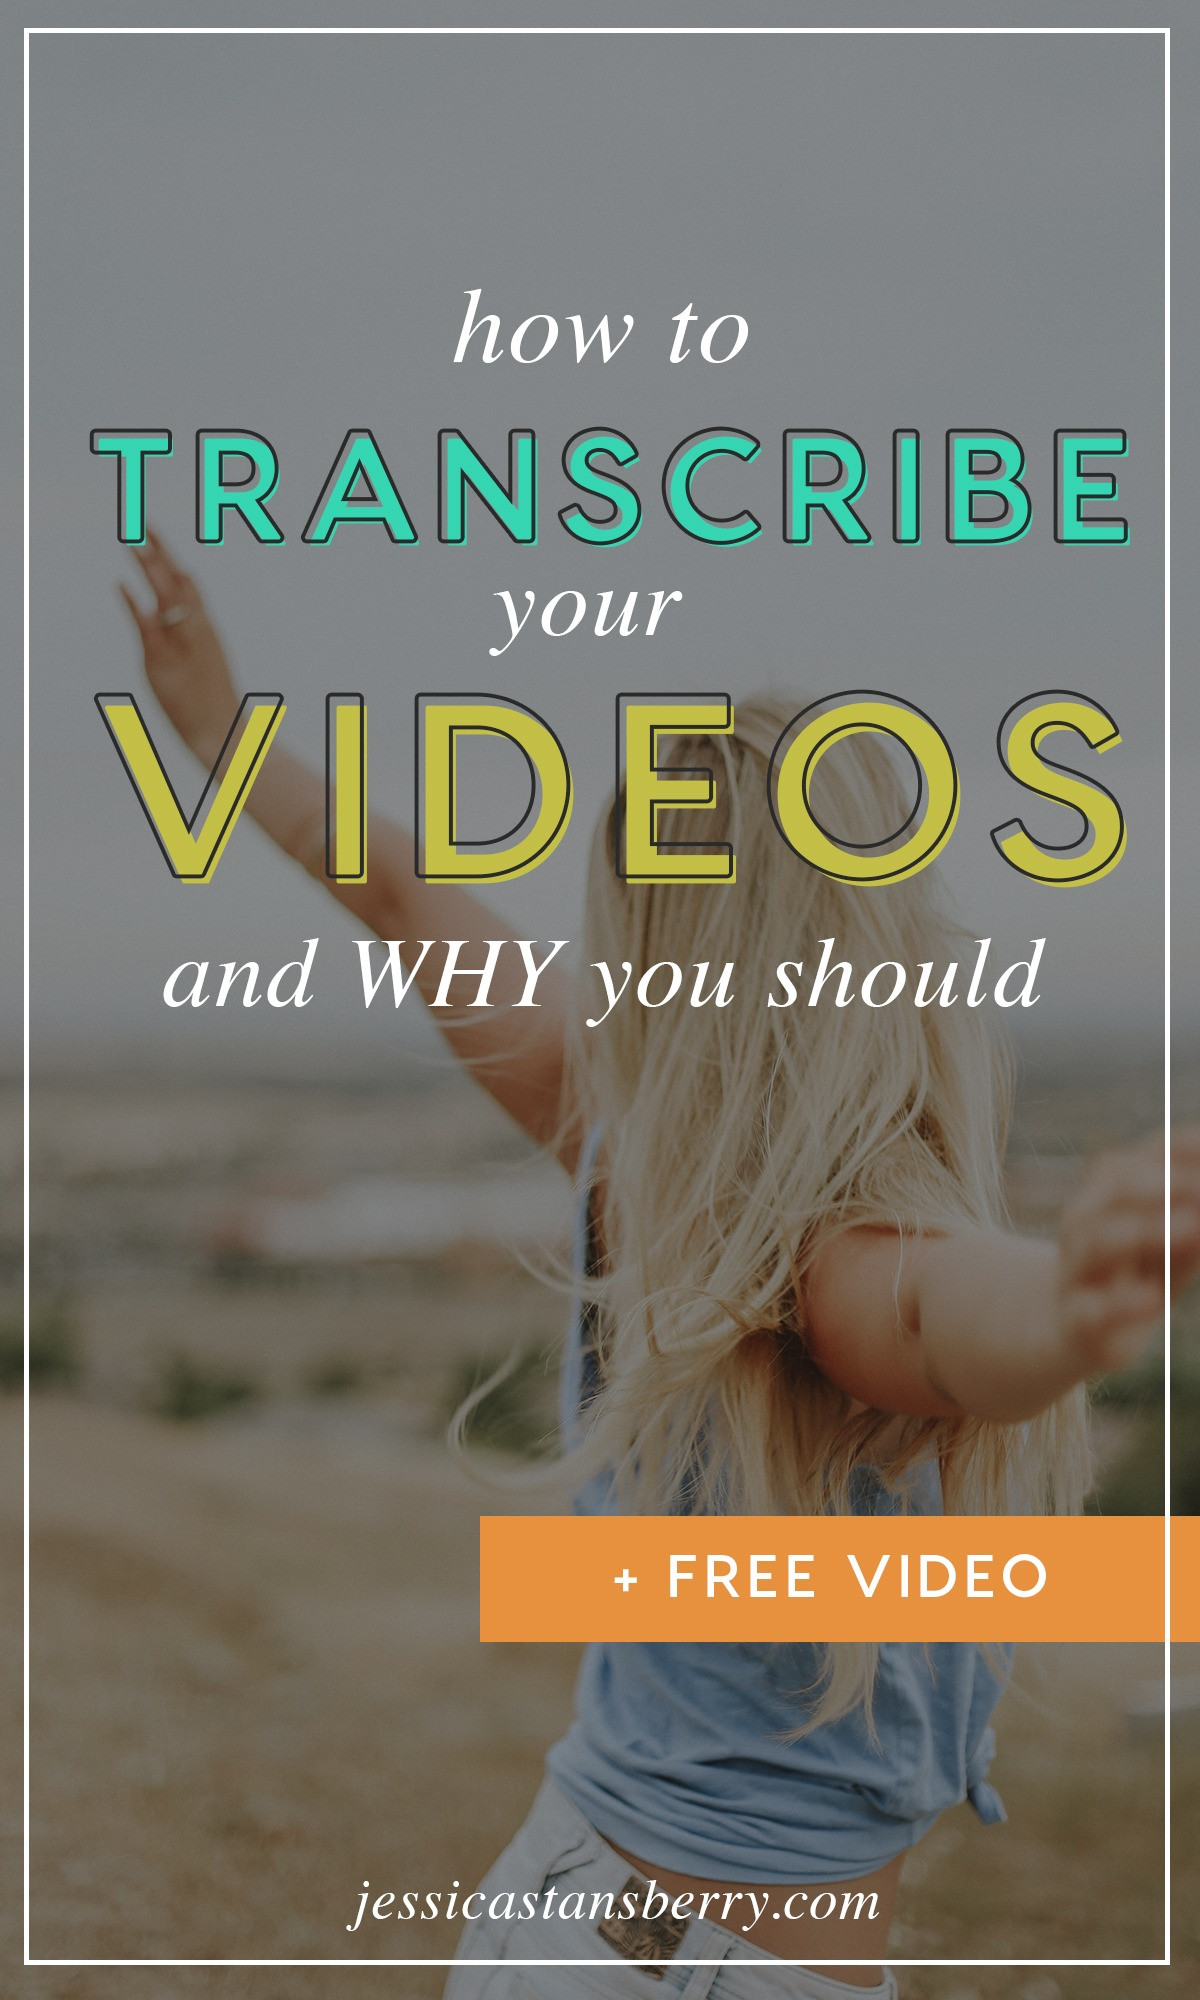 How to Transcribe Videos